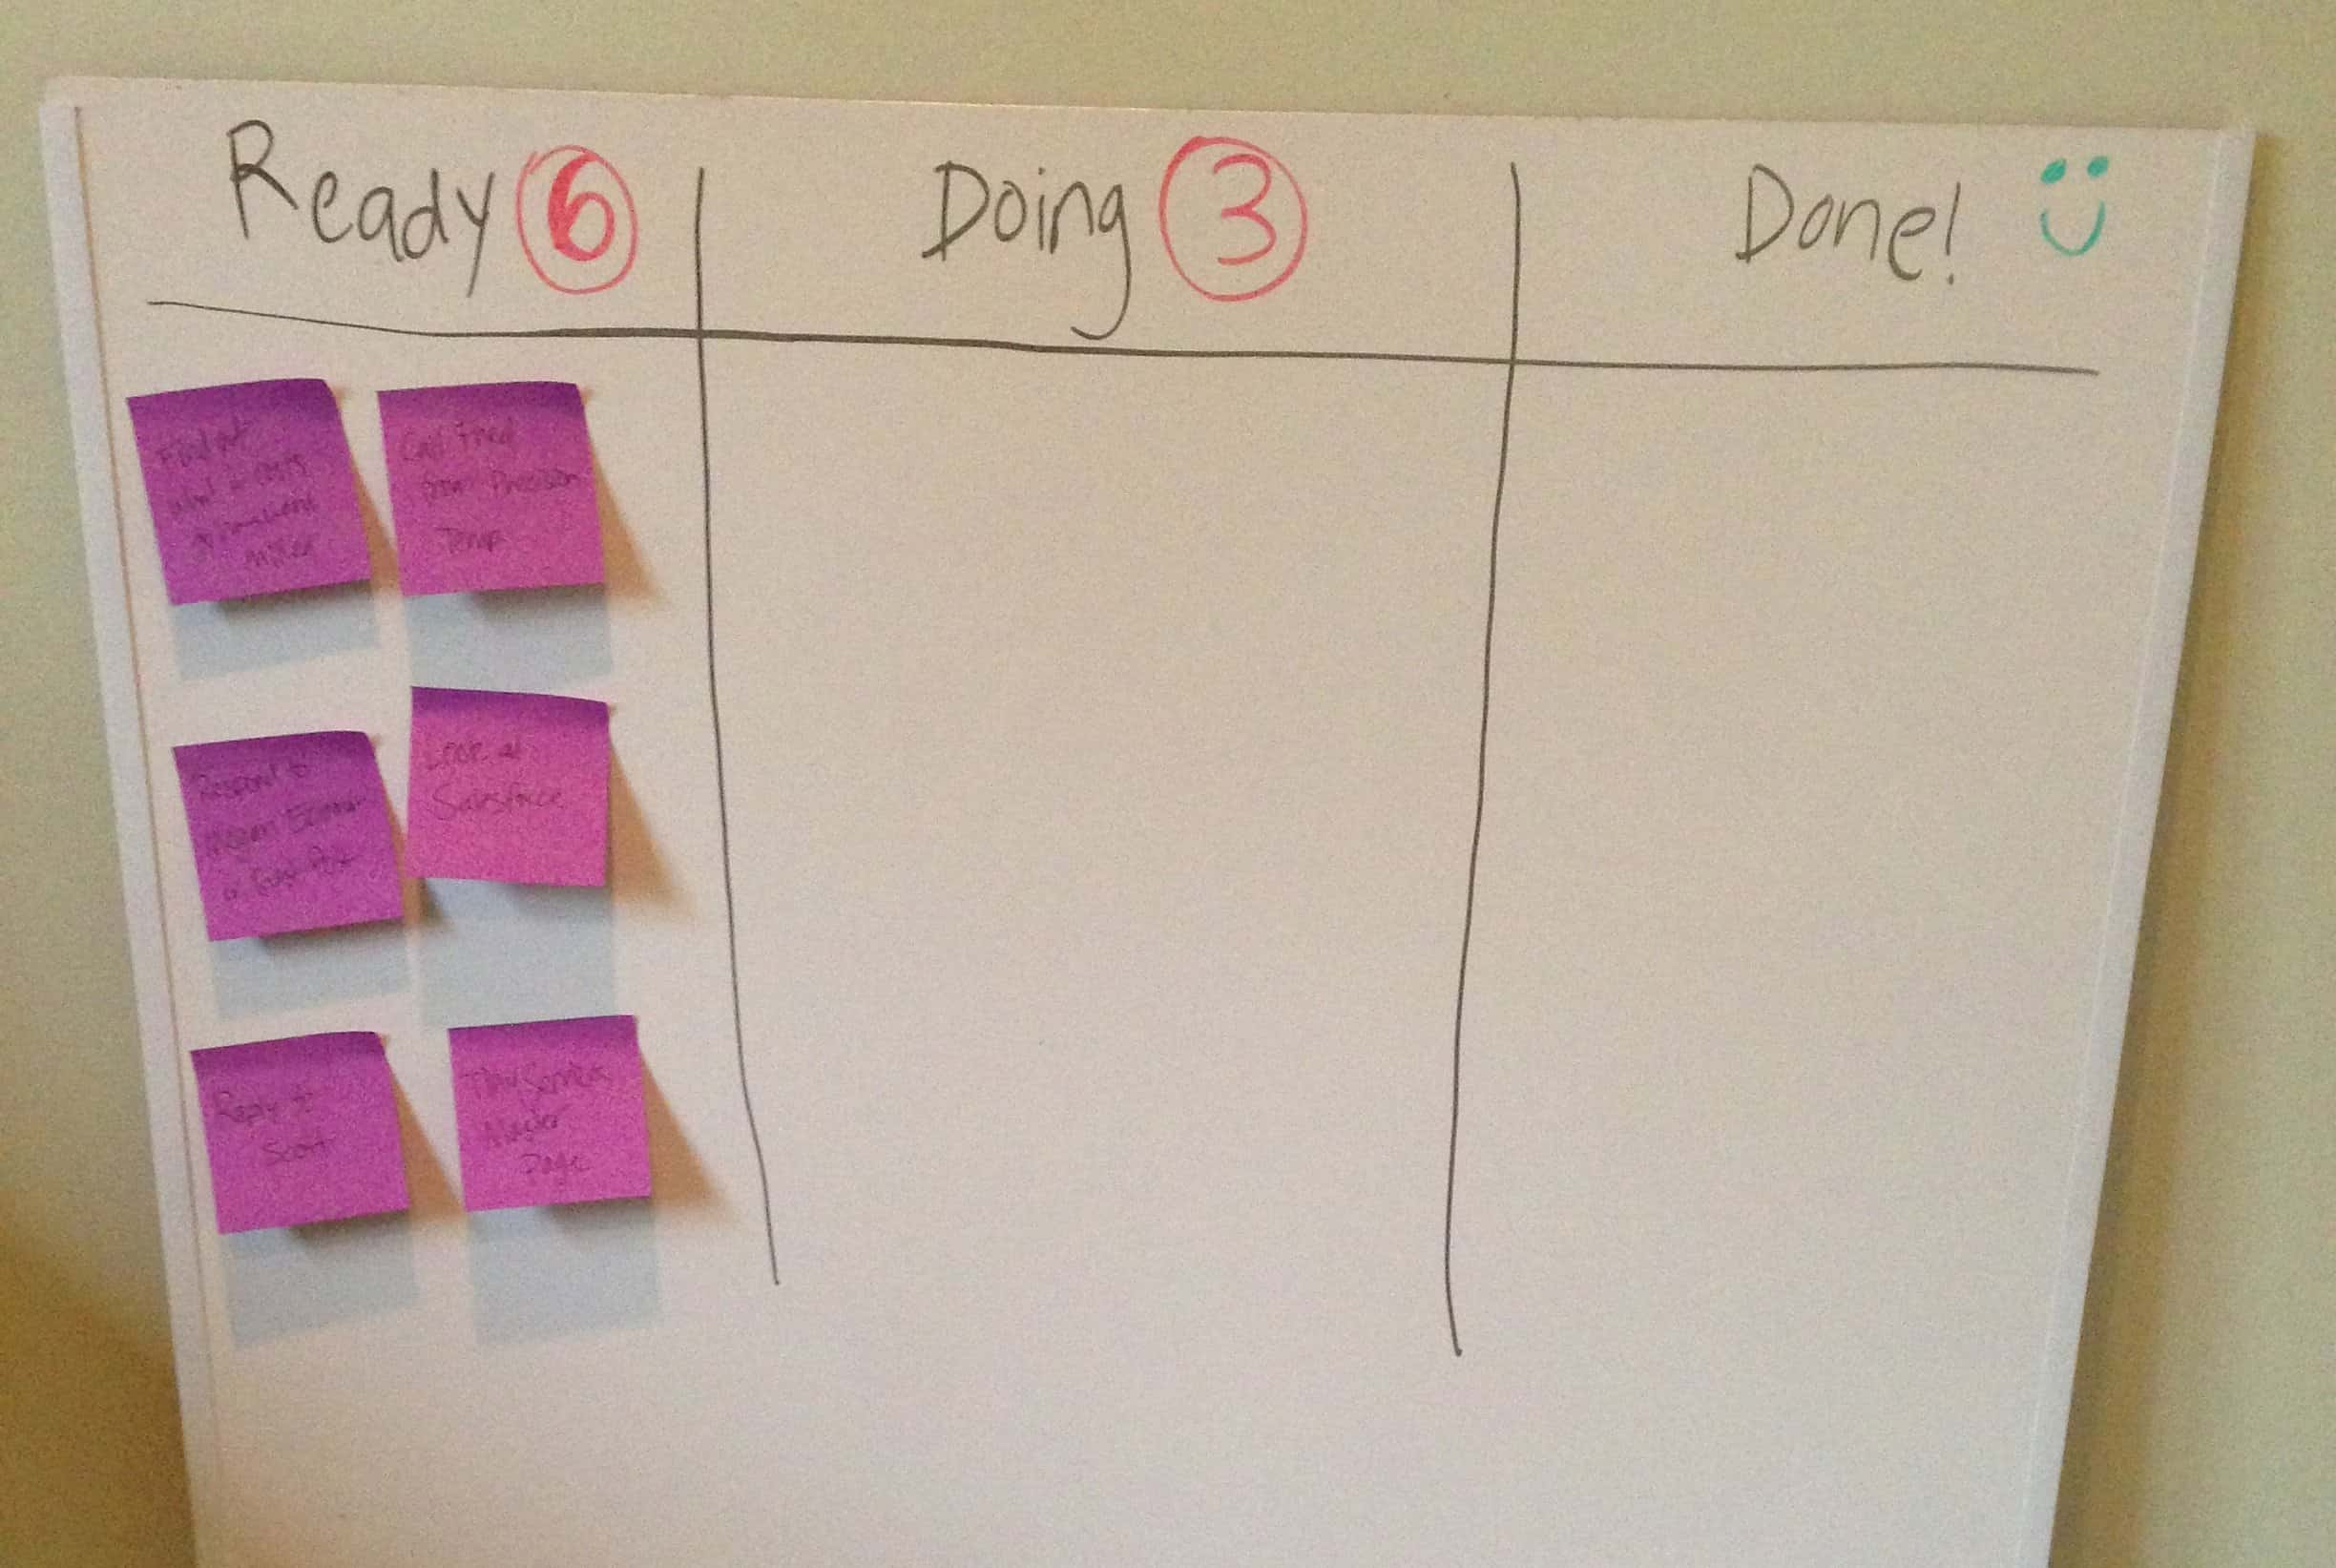 My Productivity Breakthrough: An Introduction to Personal Kanban